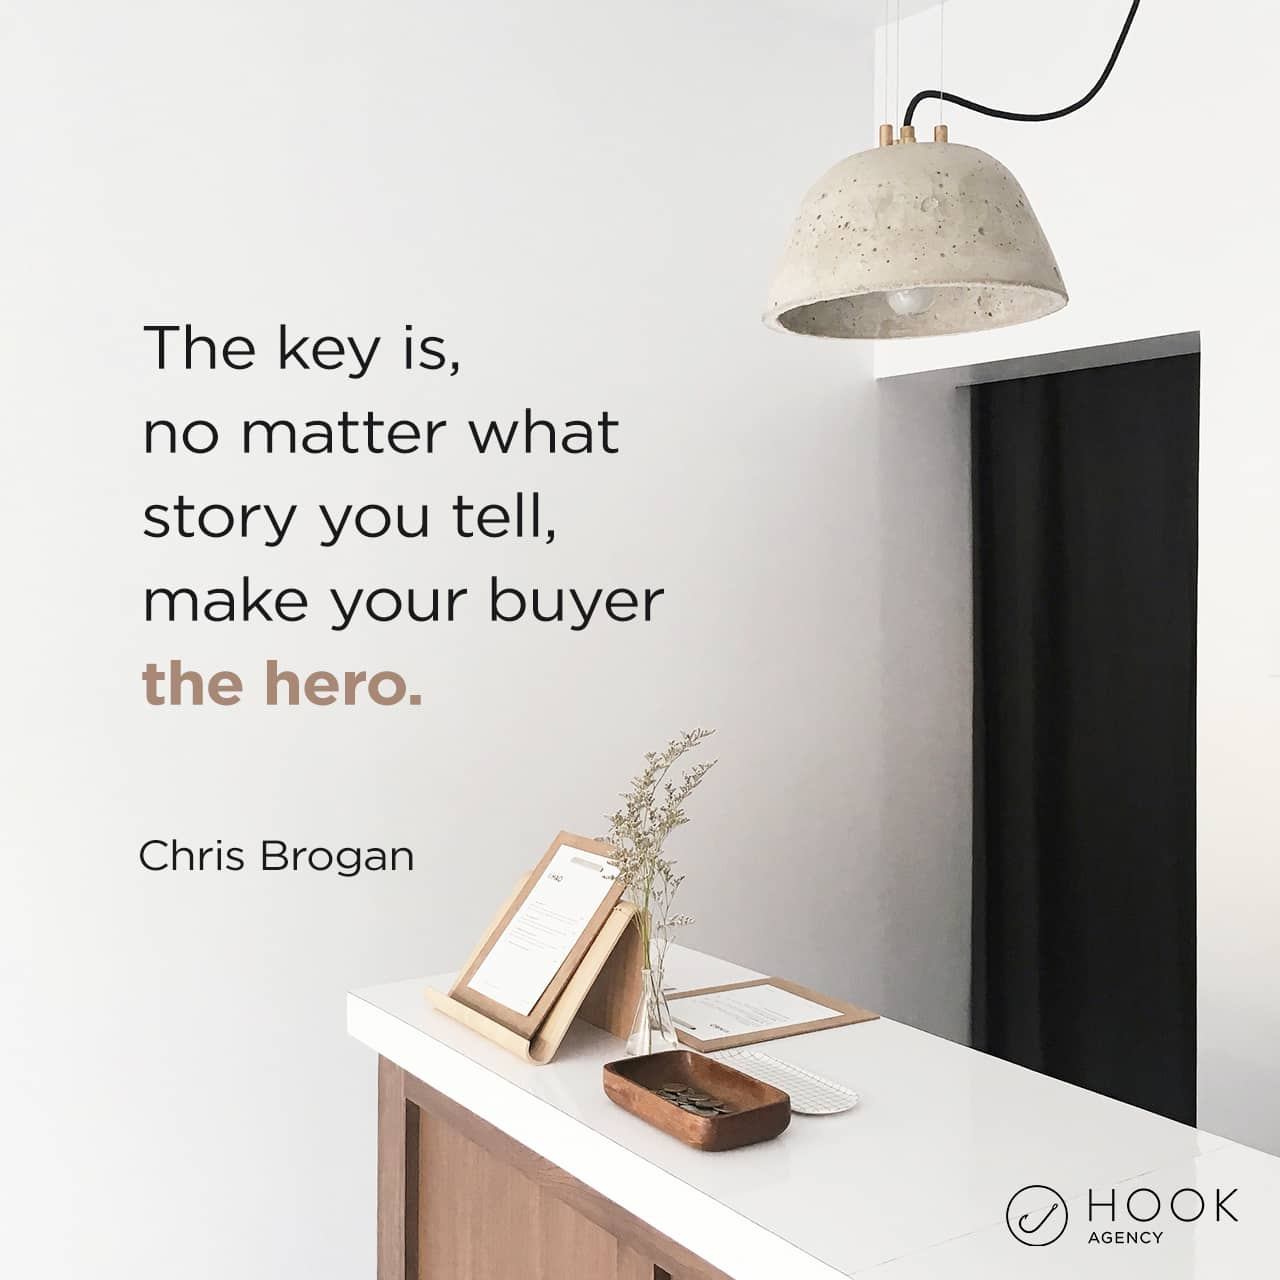 The Key is No Matter What Story You Tell Make Your Buyer the Hero - Chris Brogan... Marketing Quotes for Social Media Marketing Posts